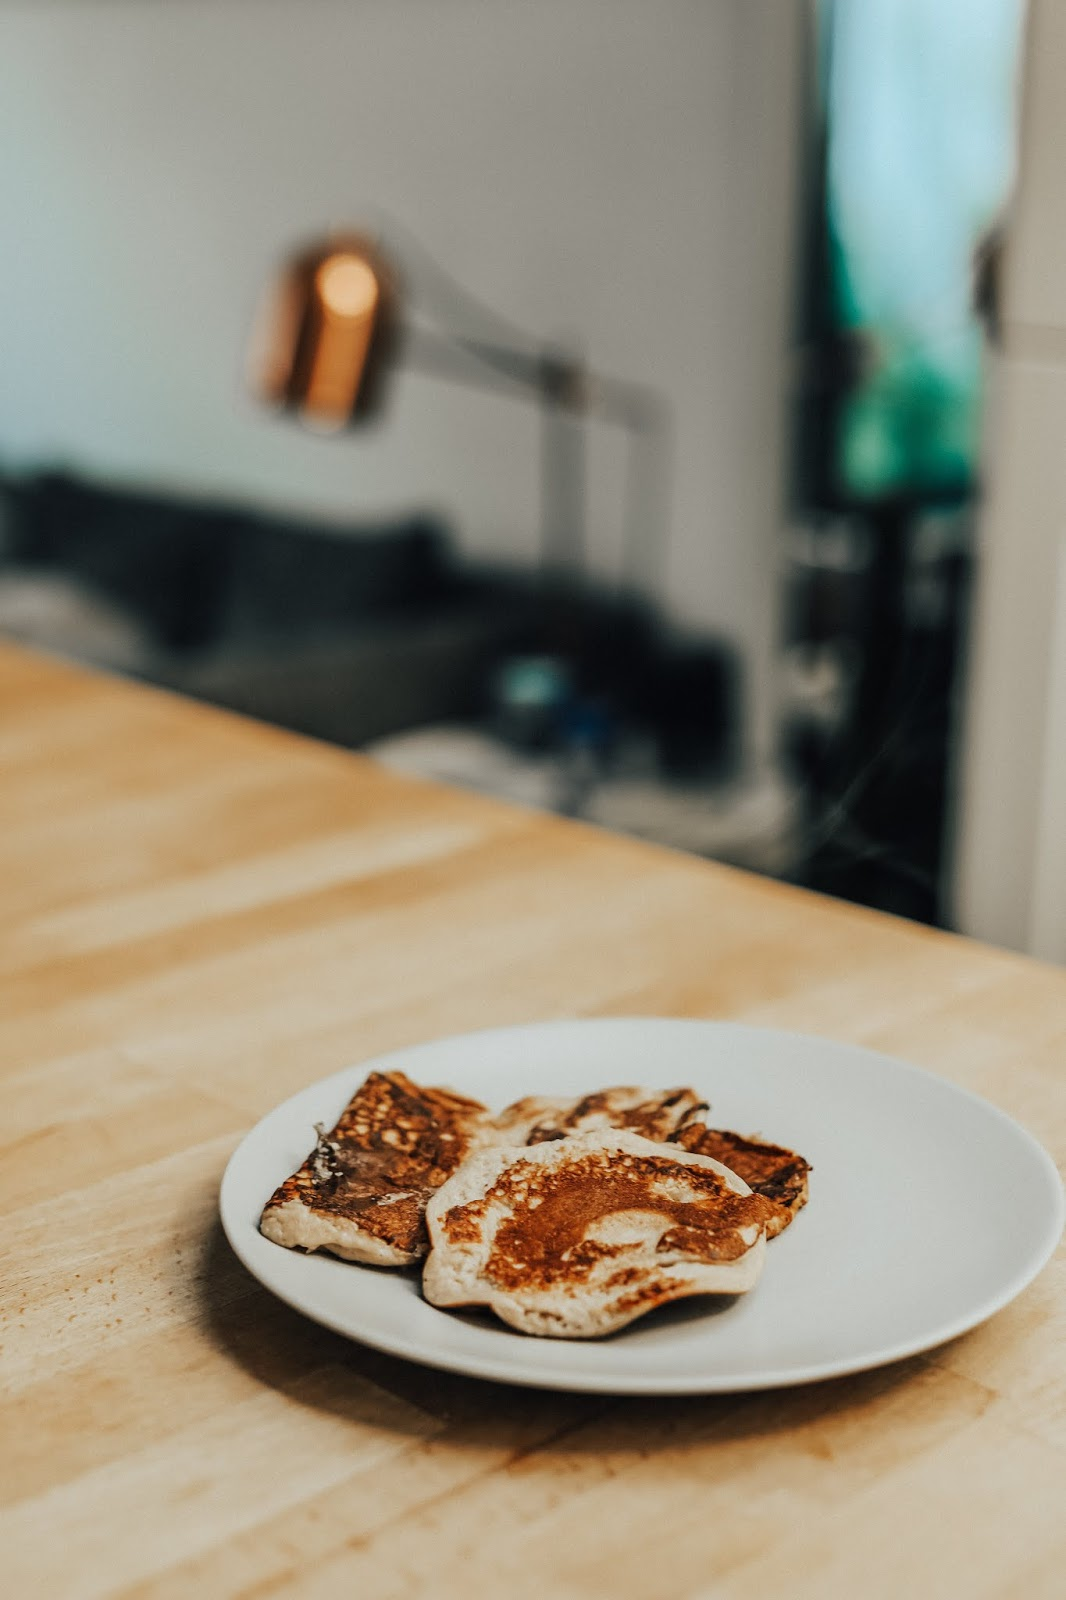 Egg, Banana + Baking Soda Pancake recipe